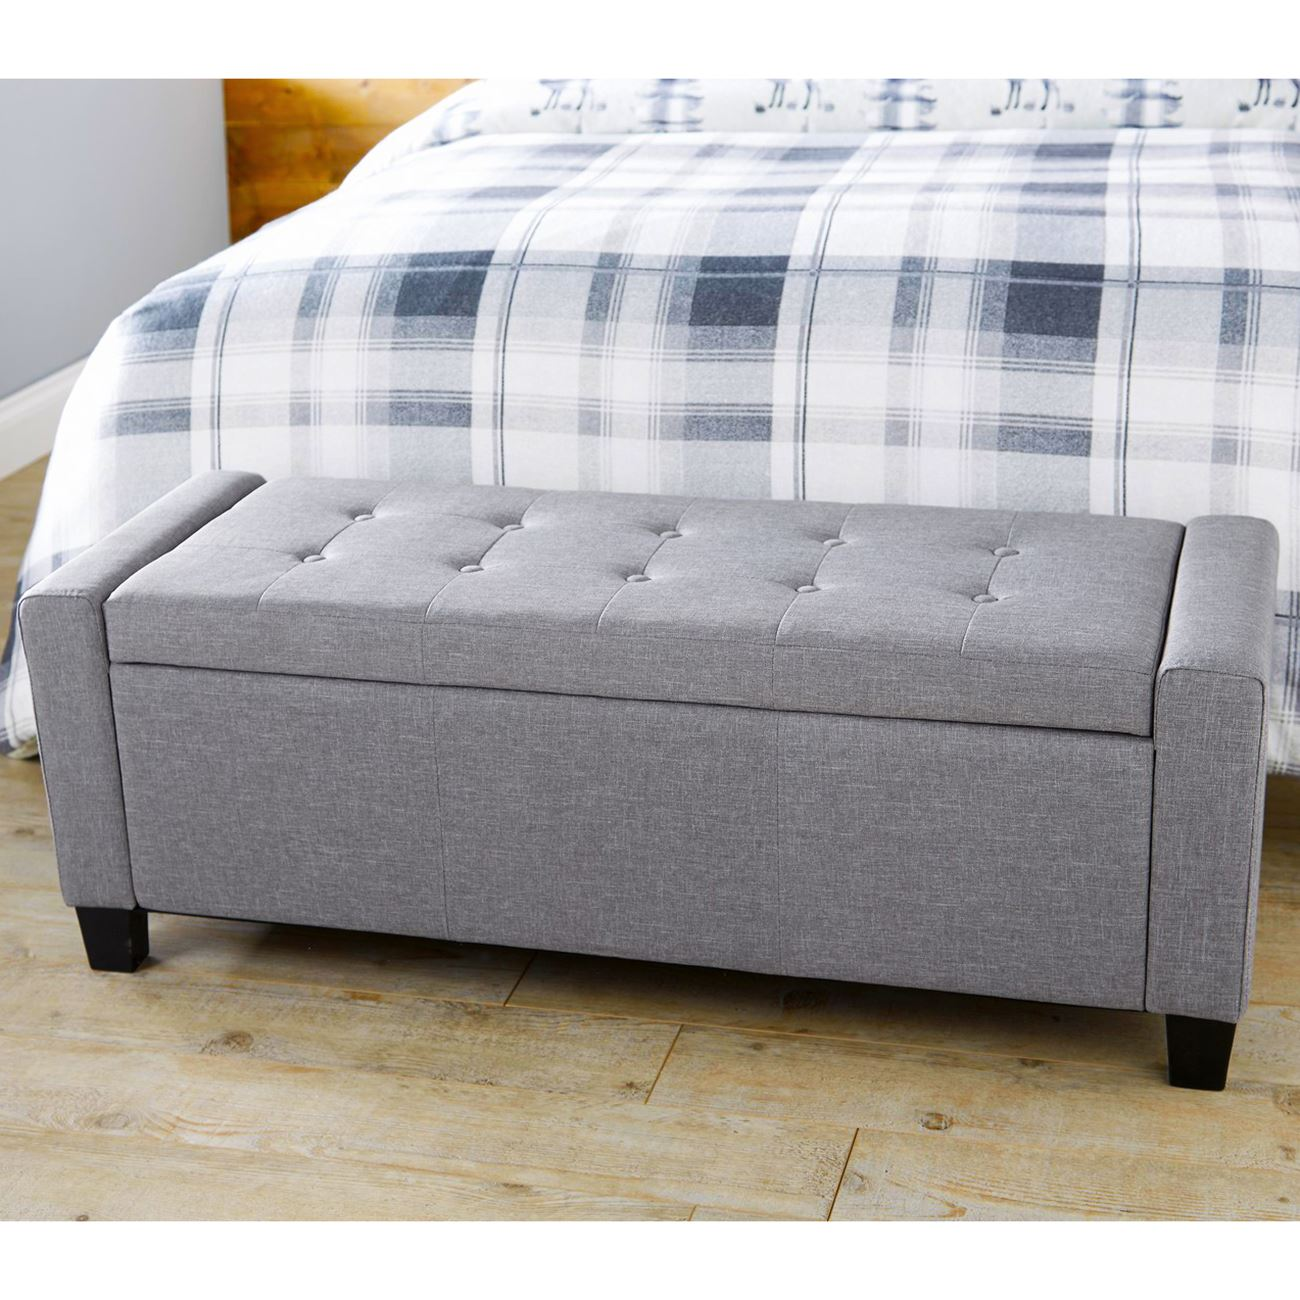 Verona Ottoman Storage Blanket Box Hopsack Fabric Seat Bench Foot Stool Silver Ebay